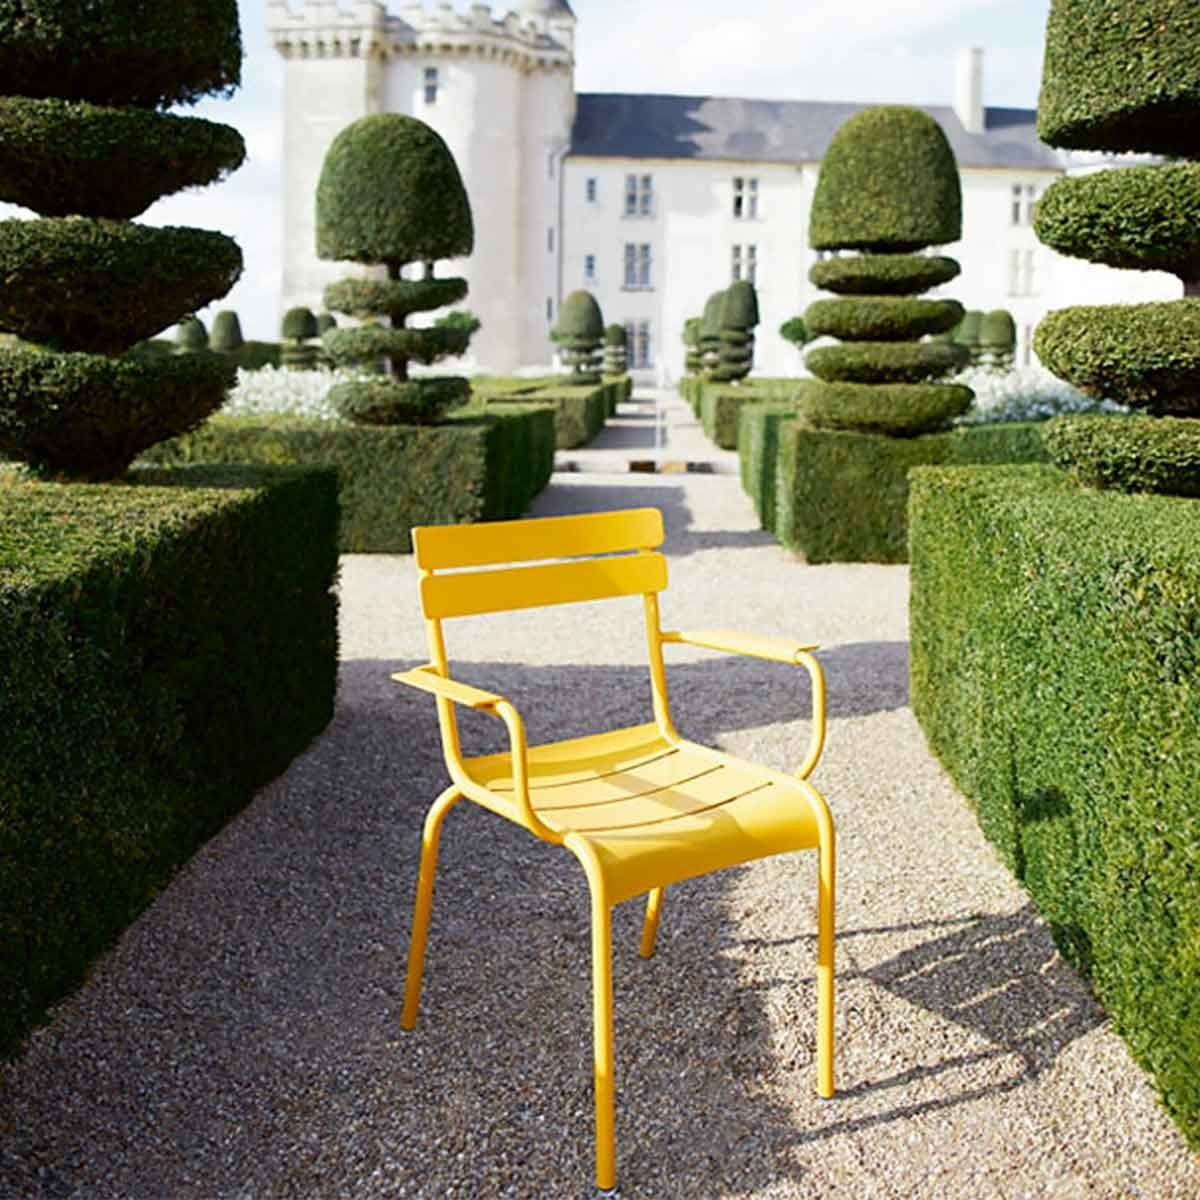 Fermob Luxembourg Armchair | Outdoor Furniture | Jardin Nz dedans Fermob Jardin Du Luxembourg